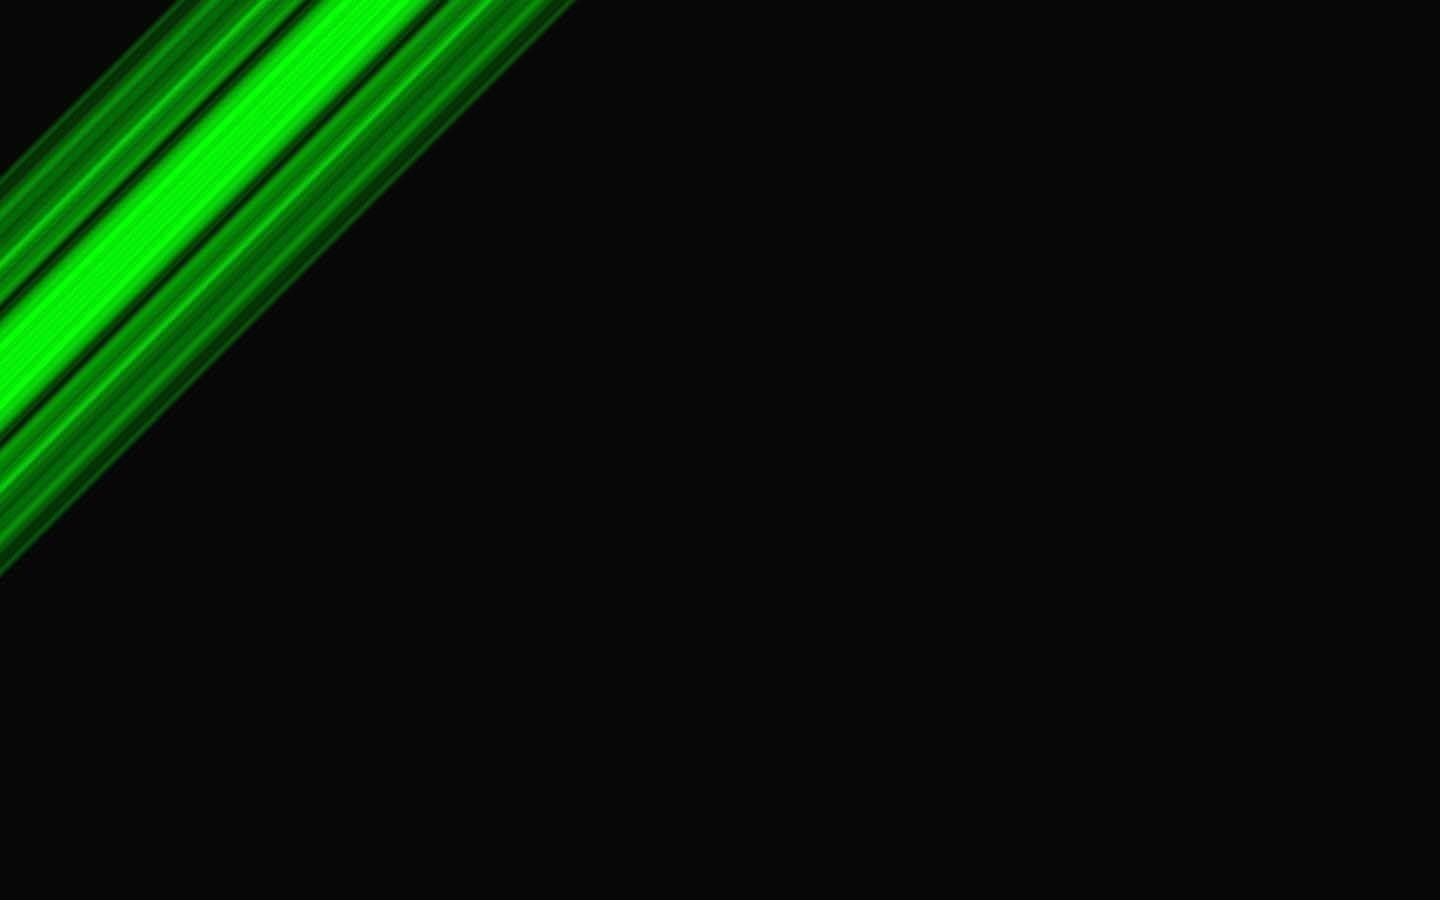 10 Top Black And Neon Green Backgrounds Full Hd 1080p For Pc Background Green And Black Background Black Hd Wallpaper Green Backgrounds